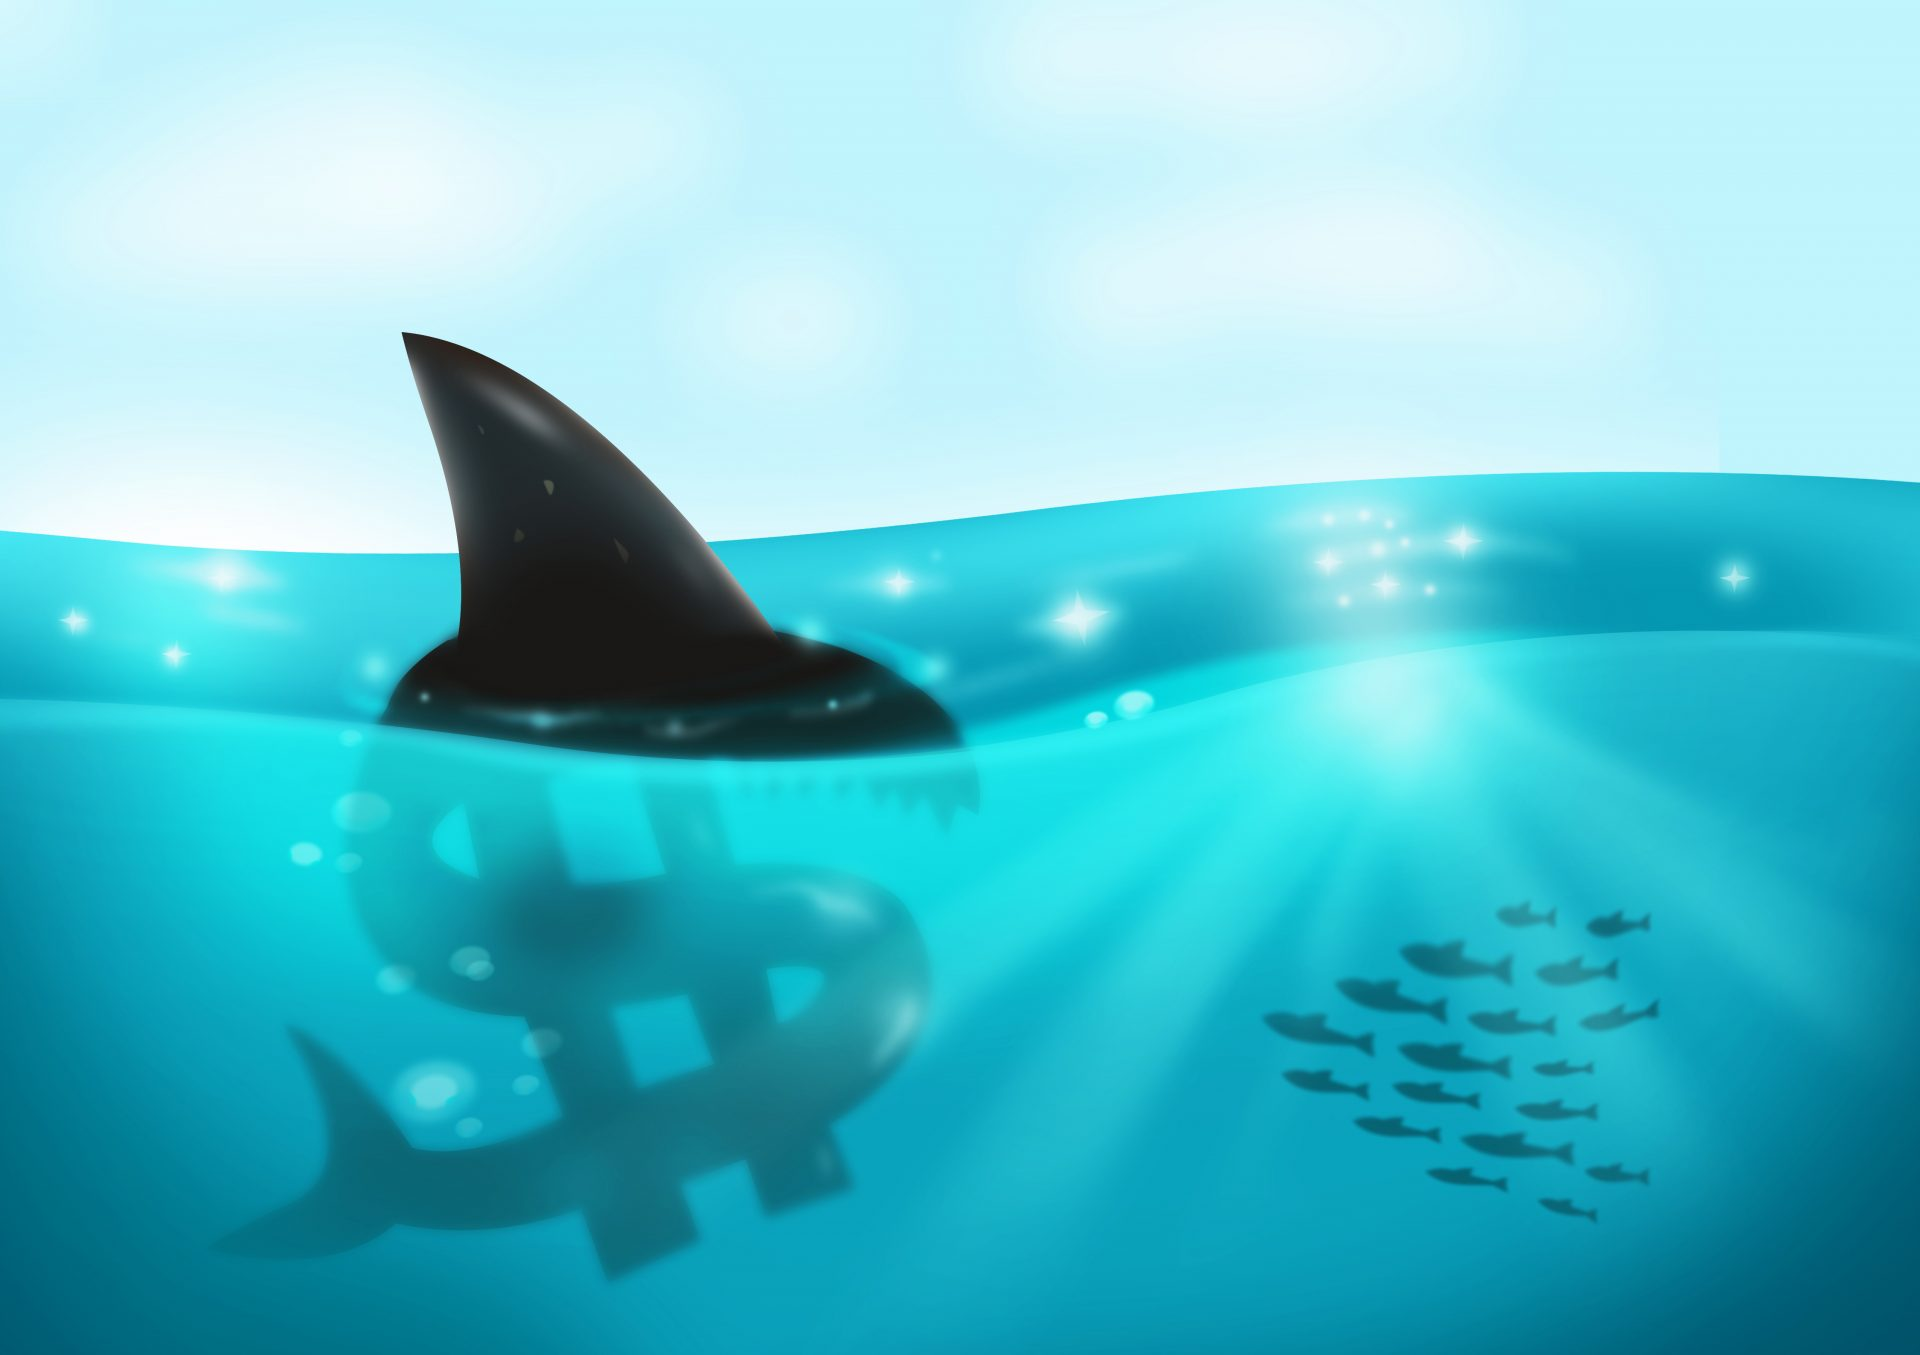 What a Rebounding Dollar Could Mean for Bitcoin and Altcoins